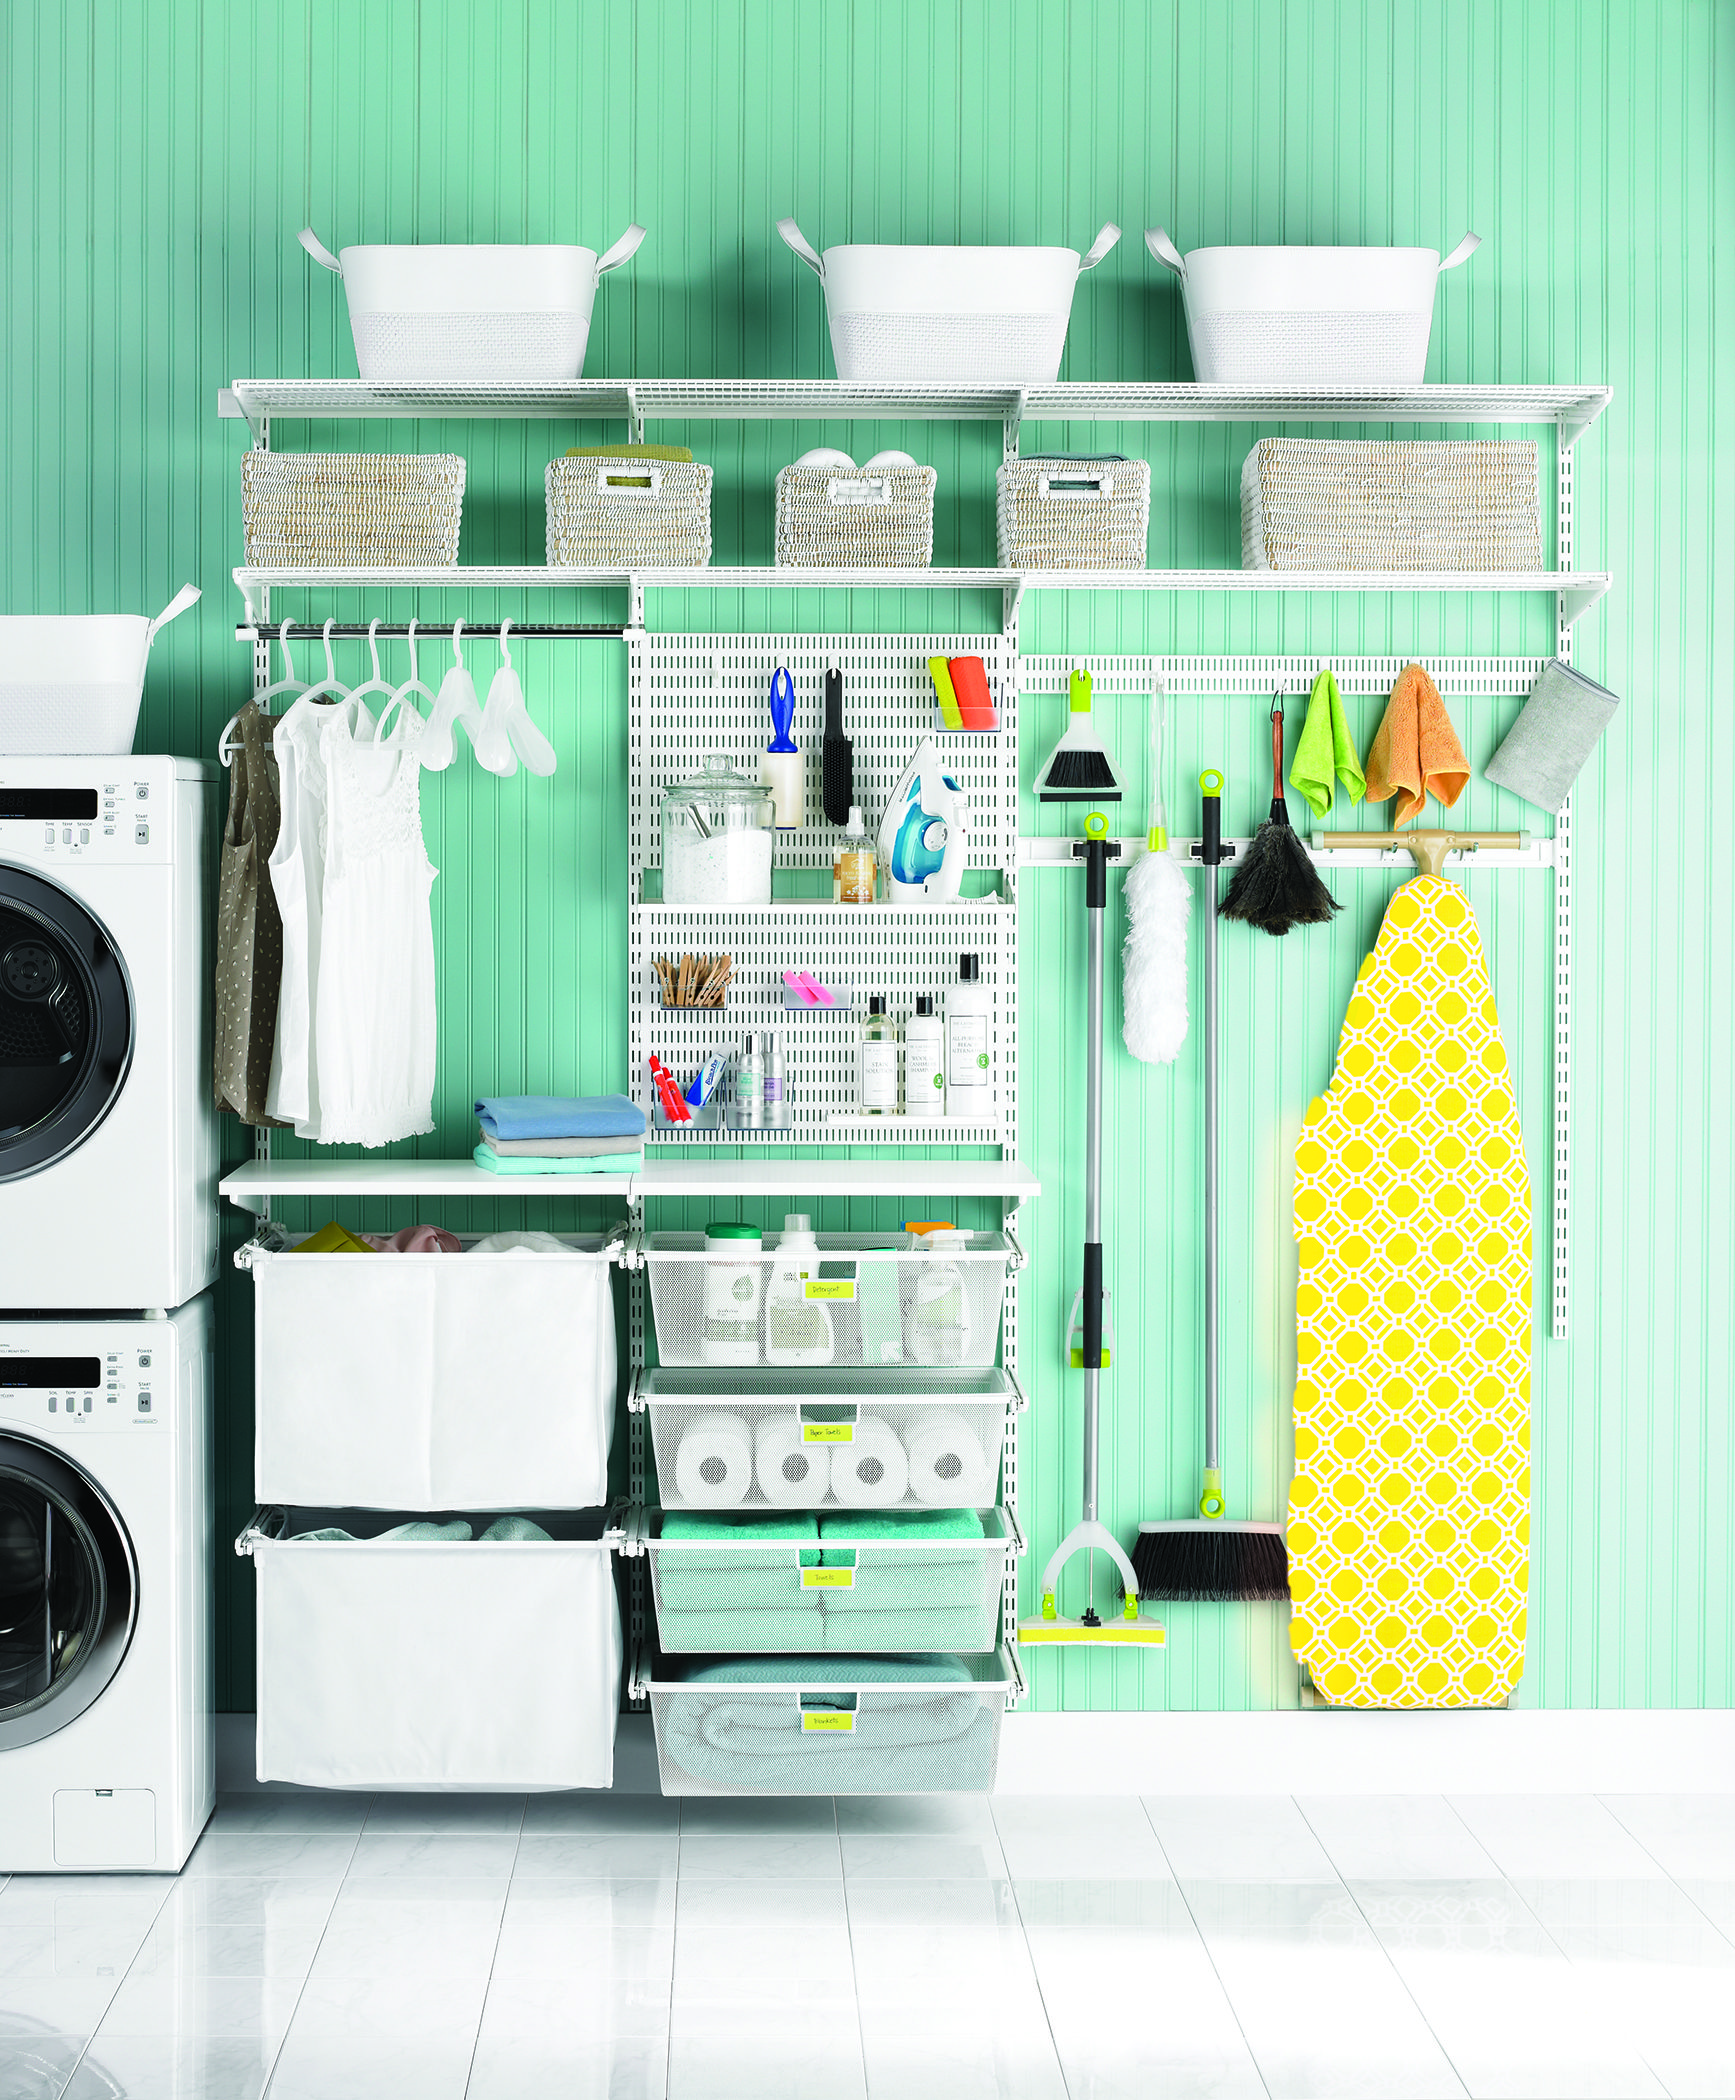 Sort Out Your Laundry Room Challenges With Elfa Laundry Room Design Laundry Room Storage Closet Organization Cheap